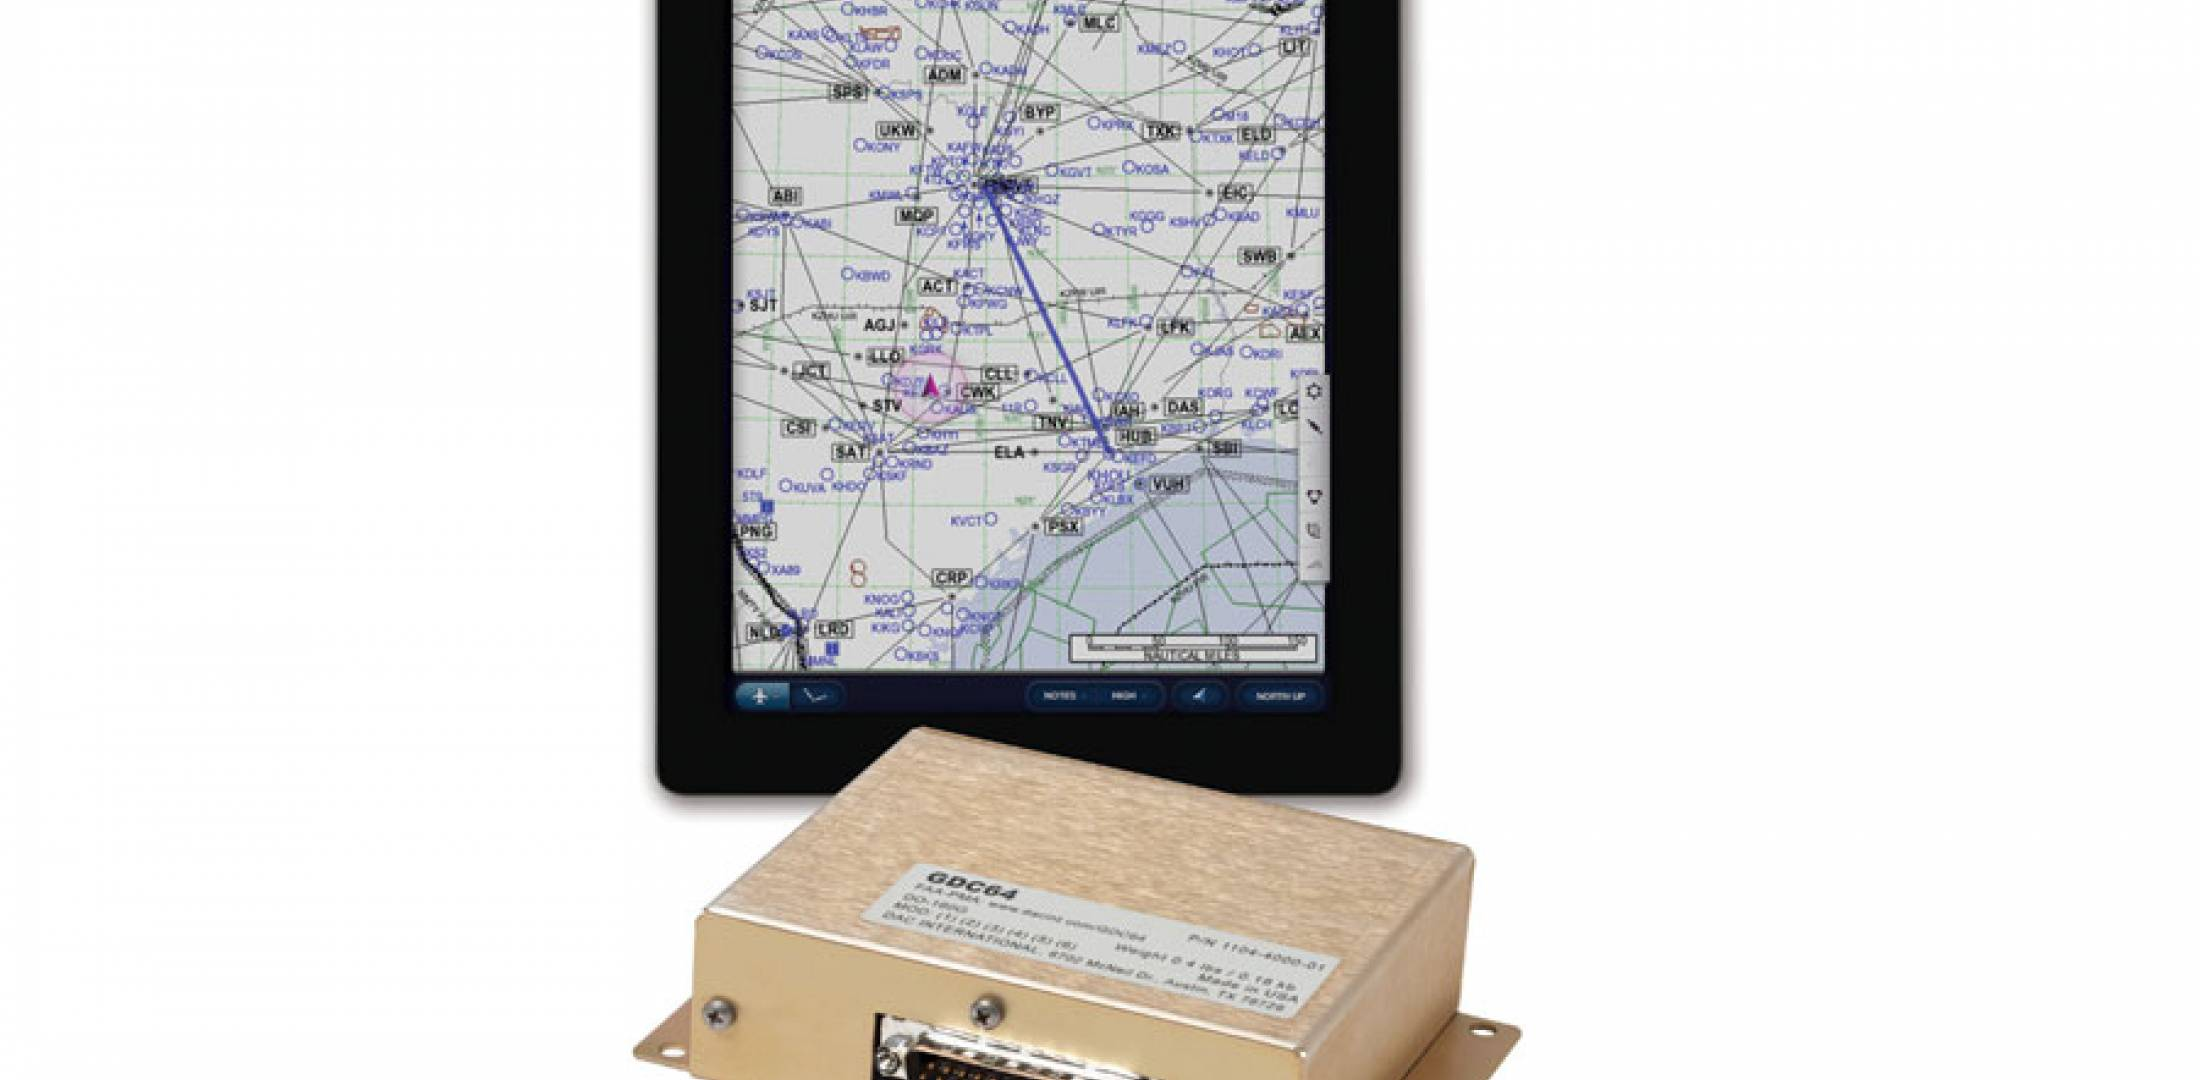 DAC International's GDC64 taps into aircraft sensors to deliver data  to creative new iPad apps.